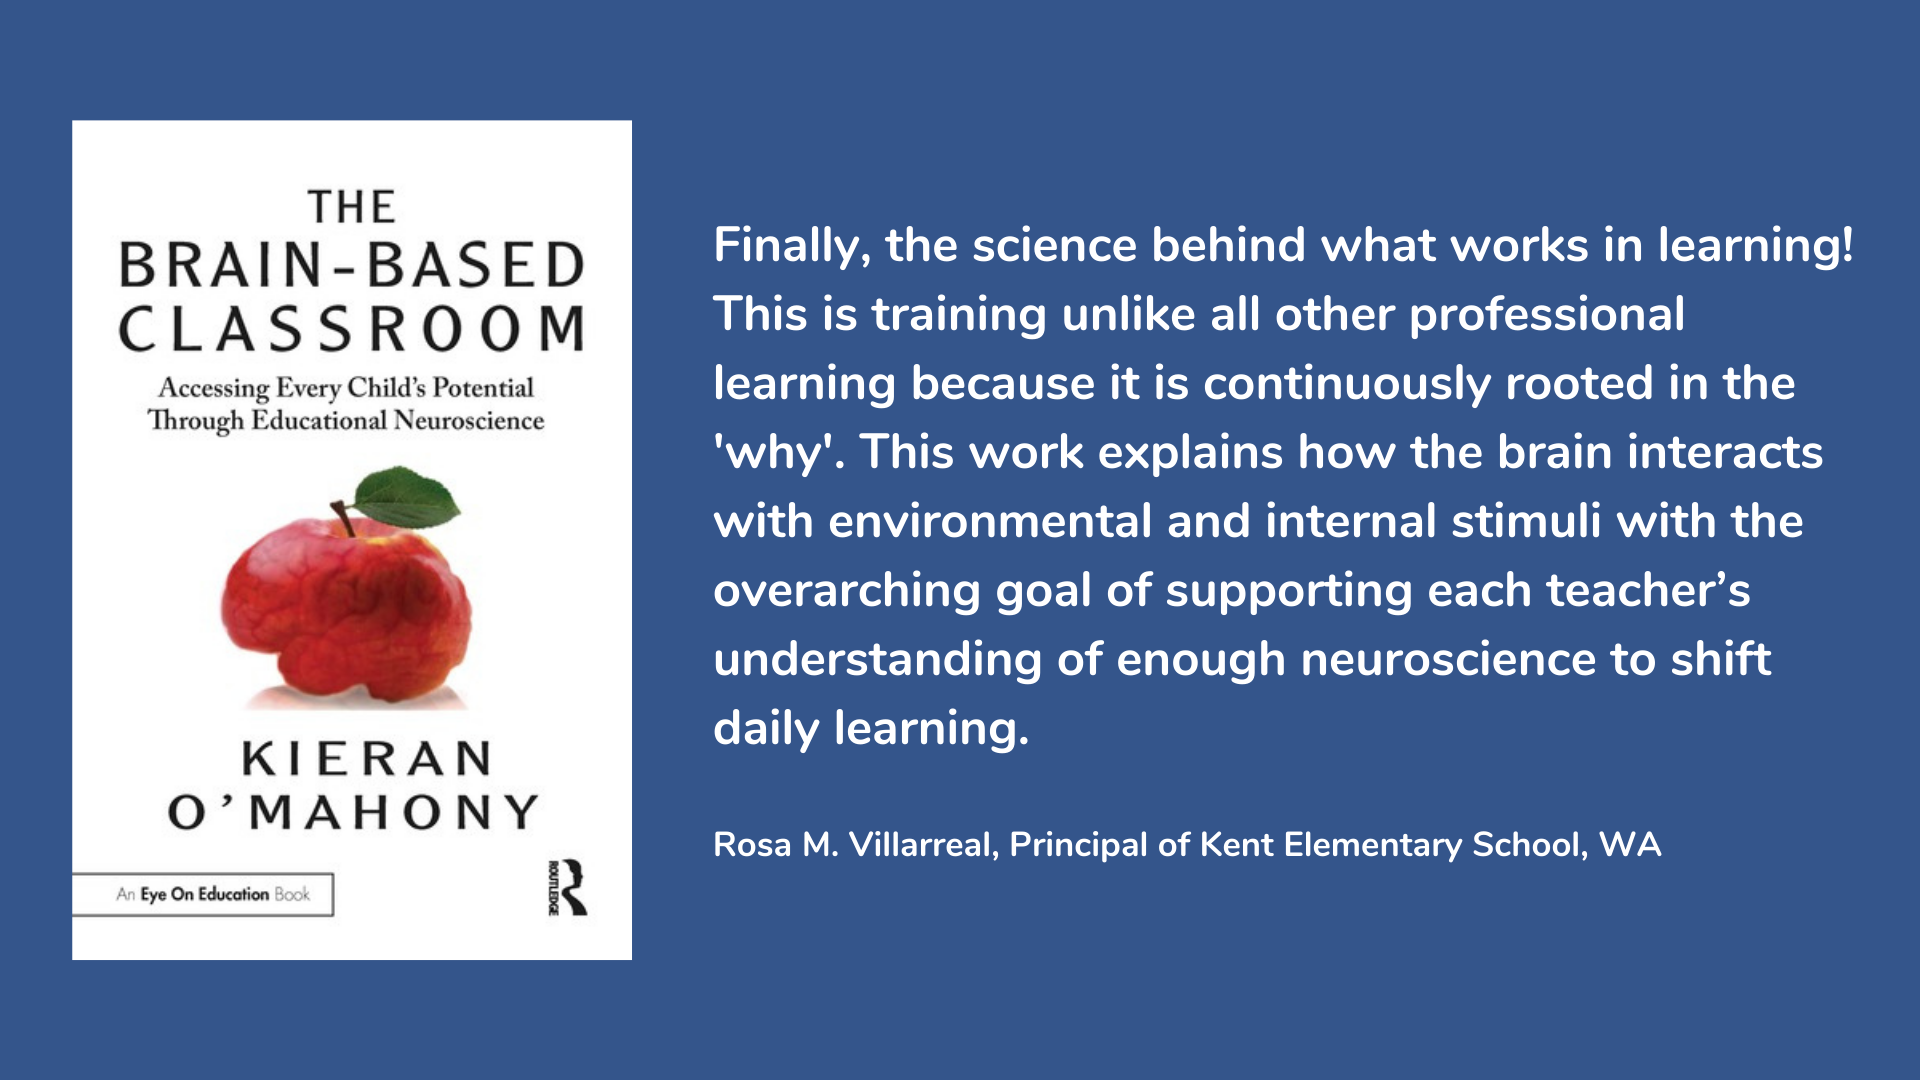 The Brain-Based Classroom: Accessing Every Child's Potential Through Educational Neuroscience